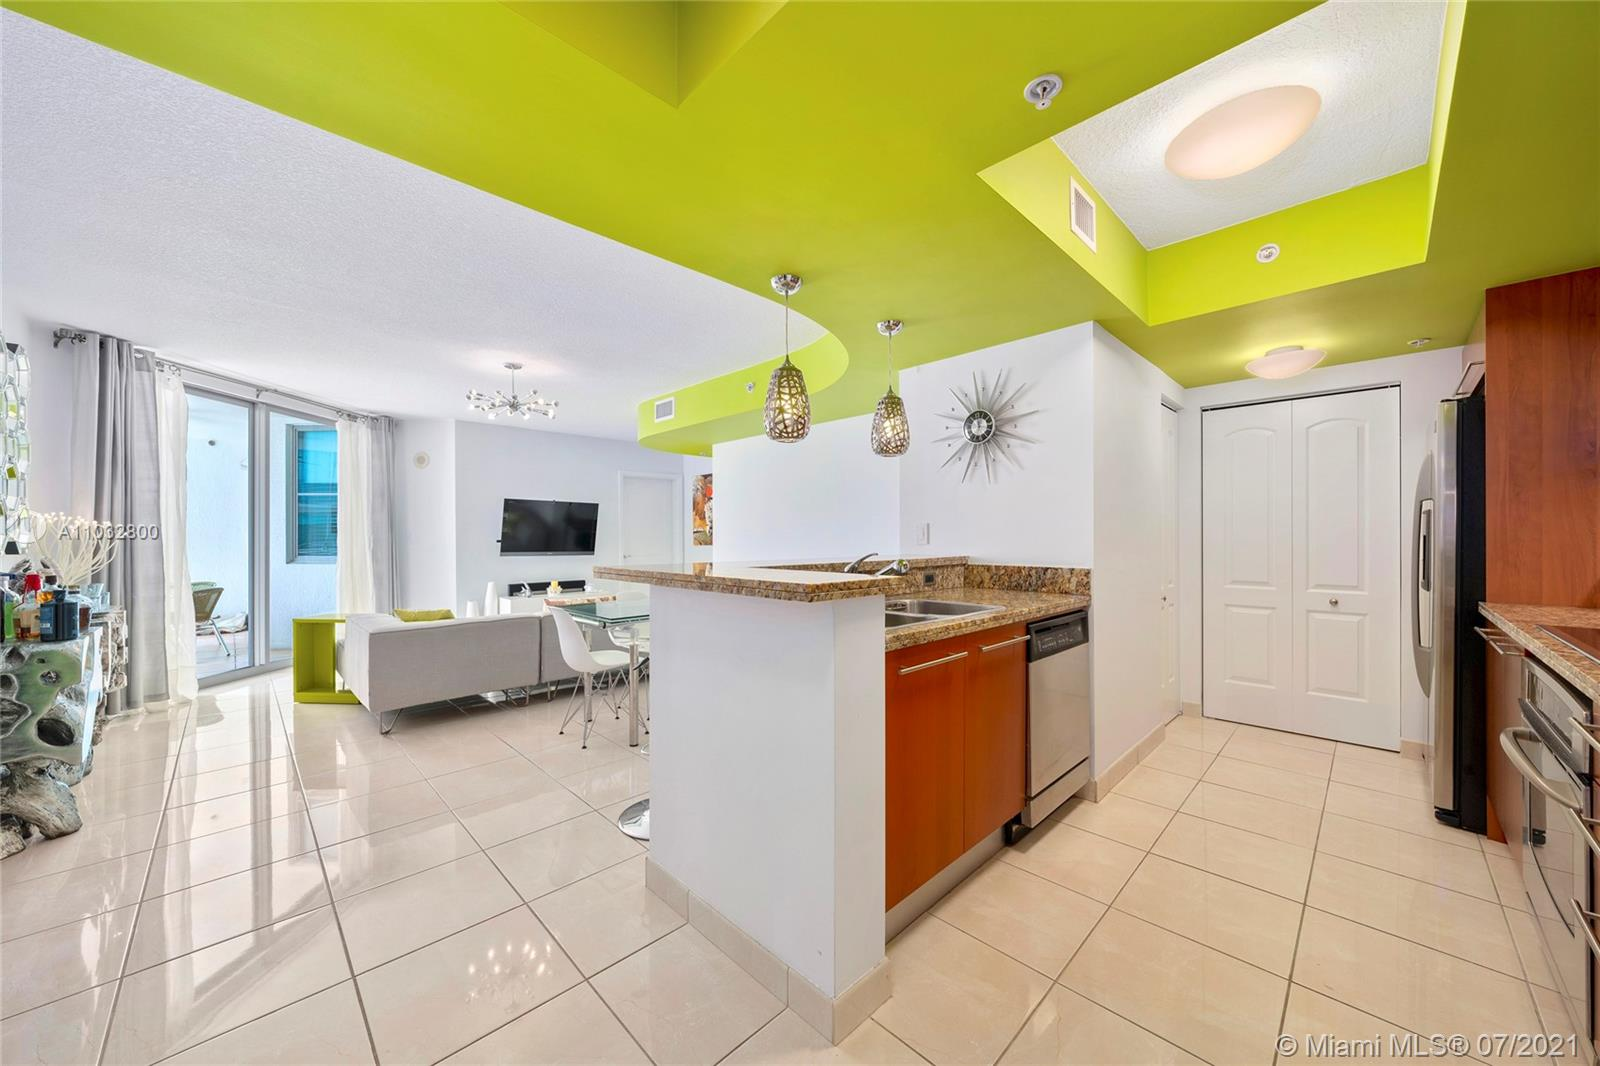 """Offering spacious 2 bed & 2.5 bath in the Cosmopolitan Residences in heart of South-of-Fifth (""""SOFI"""") in Miami Beach, Florida, steps to beach, ocean, & marina.  Split plan w/ 2 in-suite walk-in closets, built-in cabinetry & bathrooms both w/ combination showers & tubs.  Top floor residence w/ spacious balcony.  Unit amenities include 1 assigned parking & separate storage locker.  Perfect for the jet-set as may be leased 2 times per year.  The Cosmo offers boutique luxury living in a full-service mid-rise w/ 24-hr doorman, security, valet & on-site management.  Amenities include heated-infinity-edge pool, hot tub, gym, club room & valet.  Pet-friendly.  Live near the best restaurants: Prime 112 & Fish, Joe's Stone Crab, Milos, Red, Papi Steak, & other local cafes.  Furniture negotiable."""